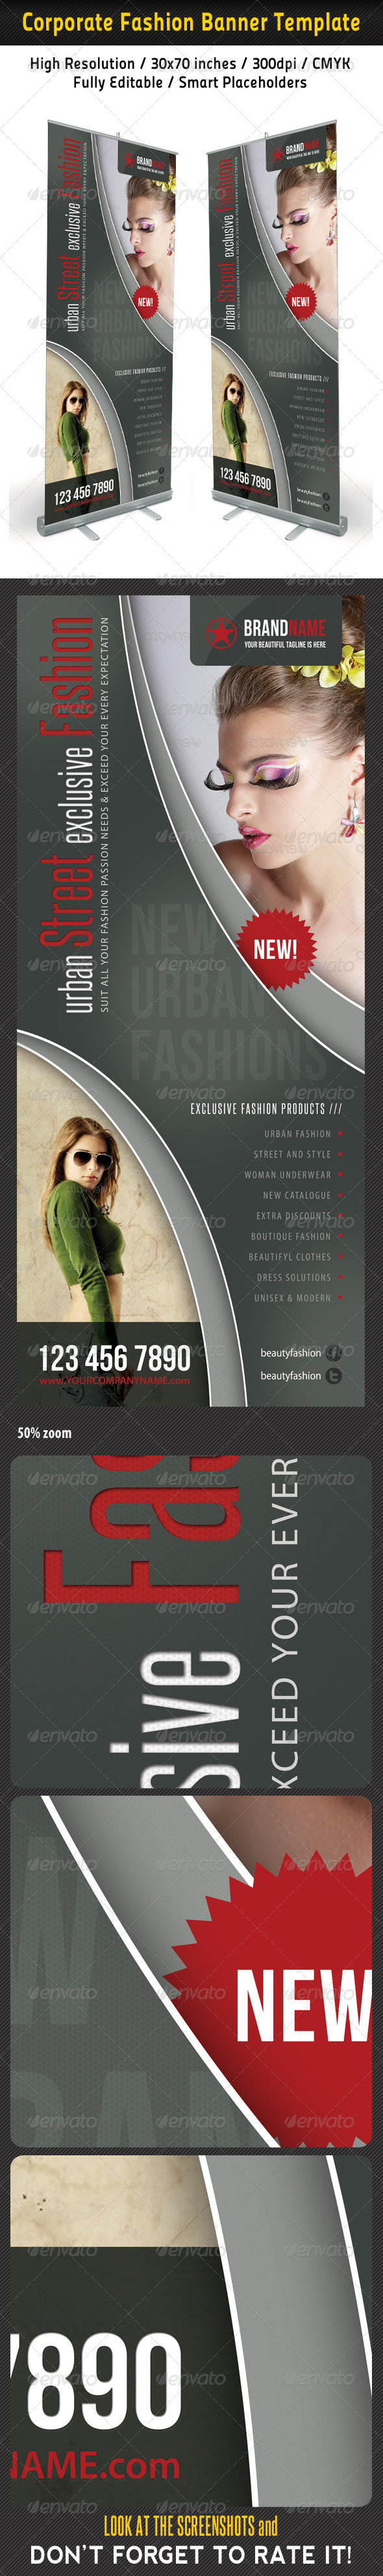 Fashion Multipurpose Banner Template 28 - Signage Print Templates